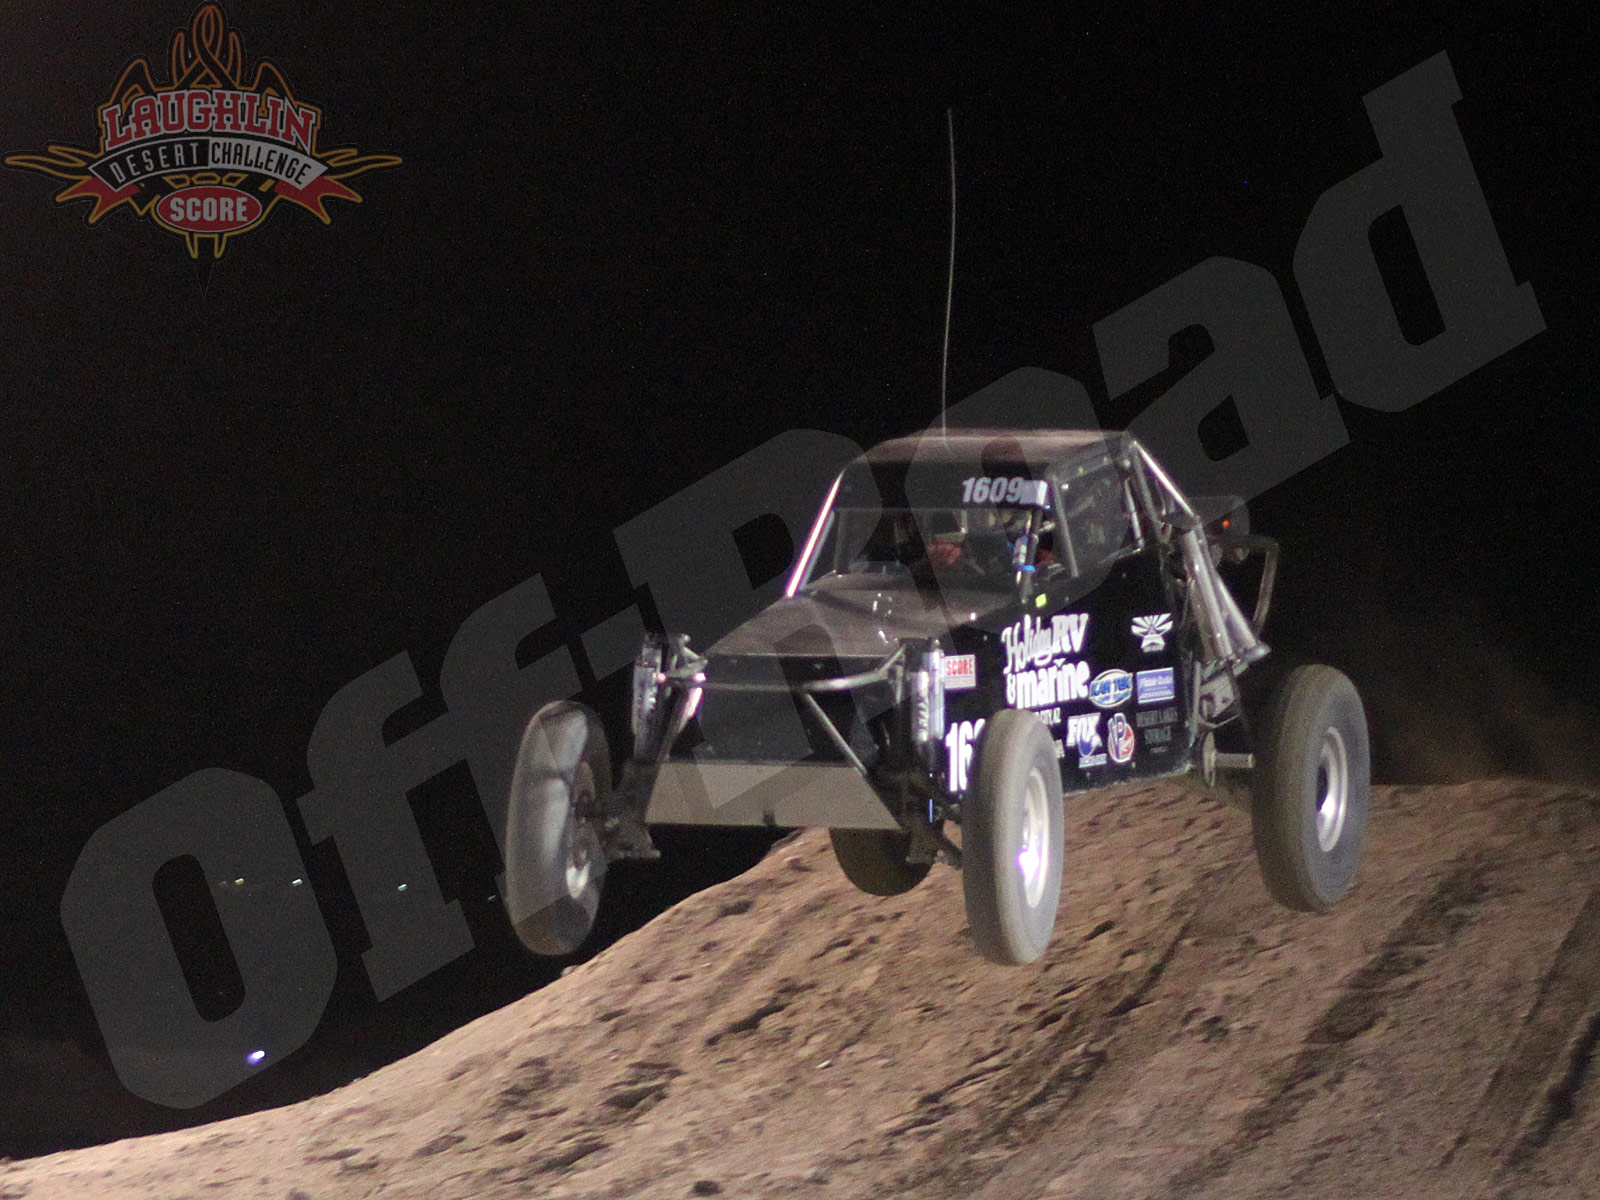 012611or 5171+2011 score laughlin desert challenge+laughlin leap